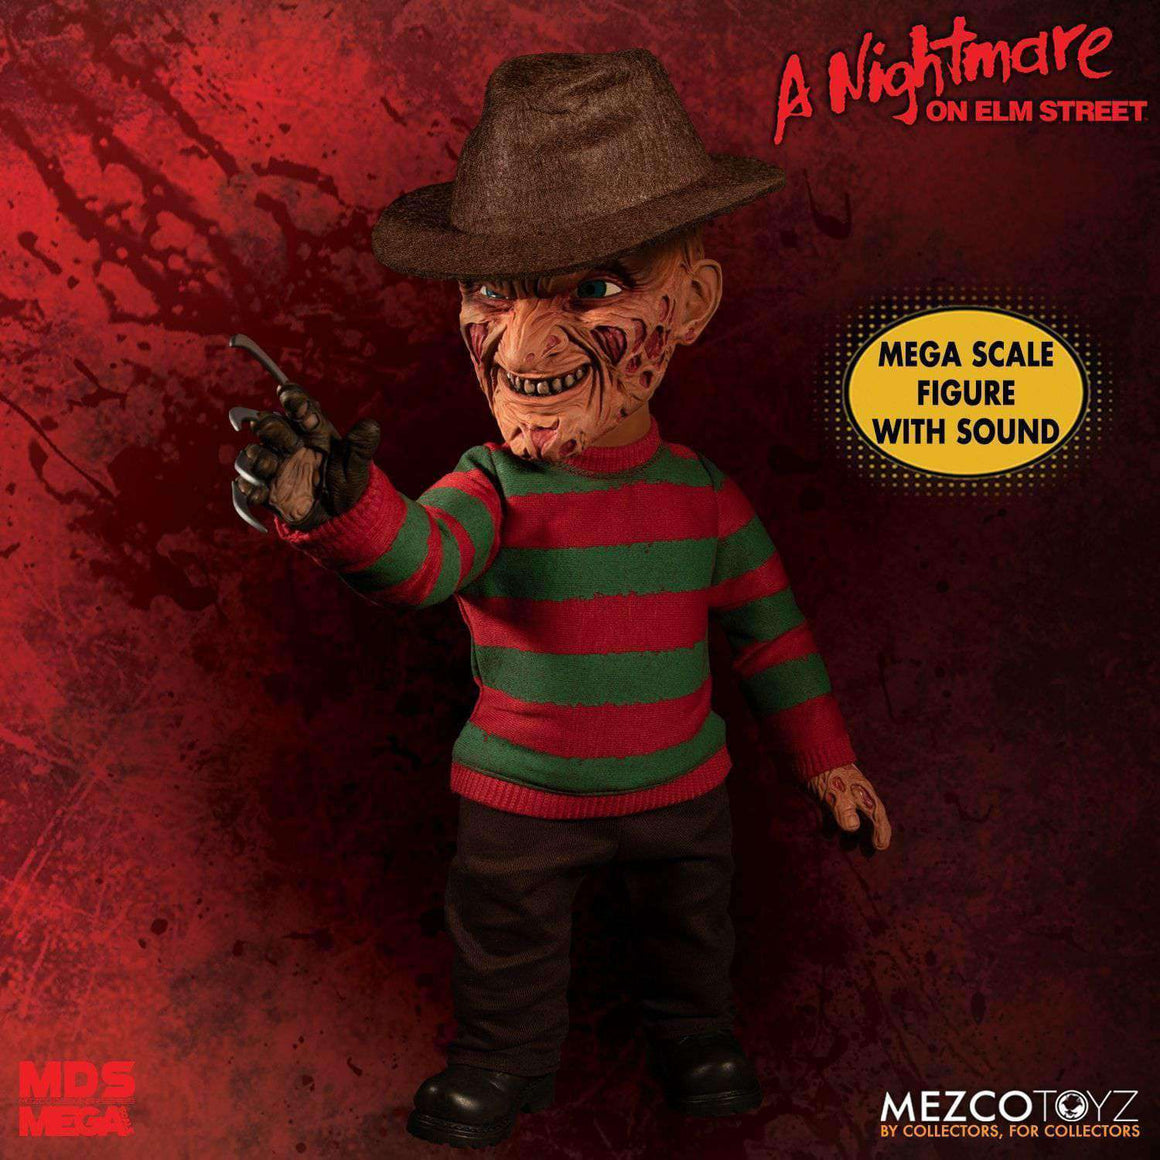 A Nightmare on Elm Street: Mega Scale Talking Freddy Krueger - Q3 2019